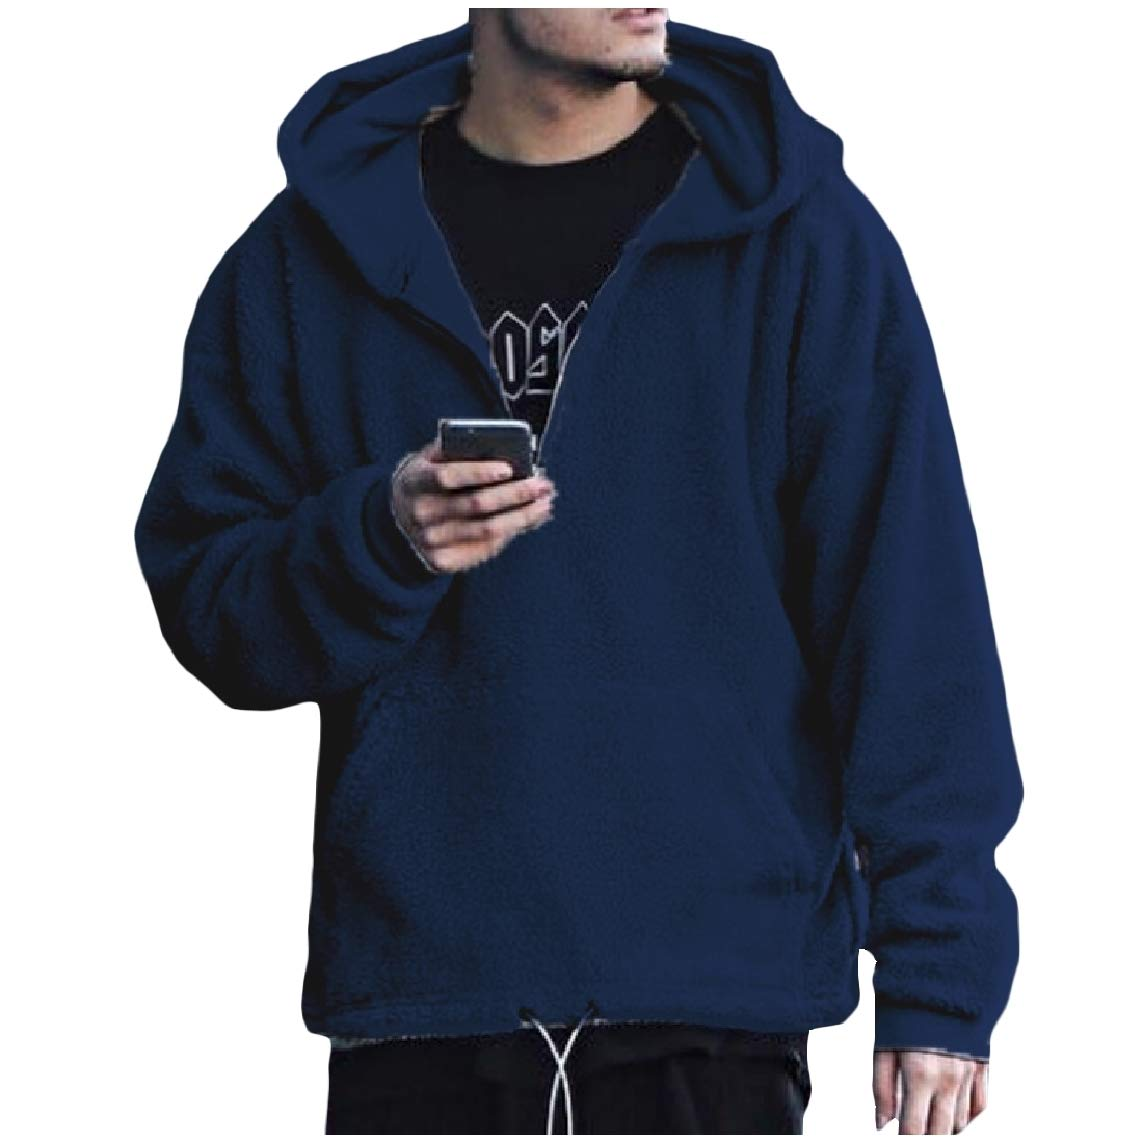 LinkShow Mens Long Sleeve Casual Cashmere Sweater Hooded Cargo Pocket Tees Top